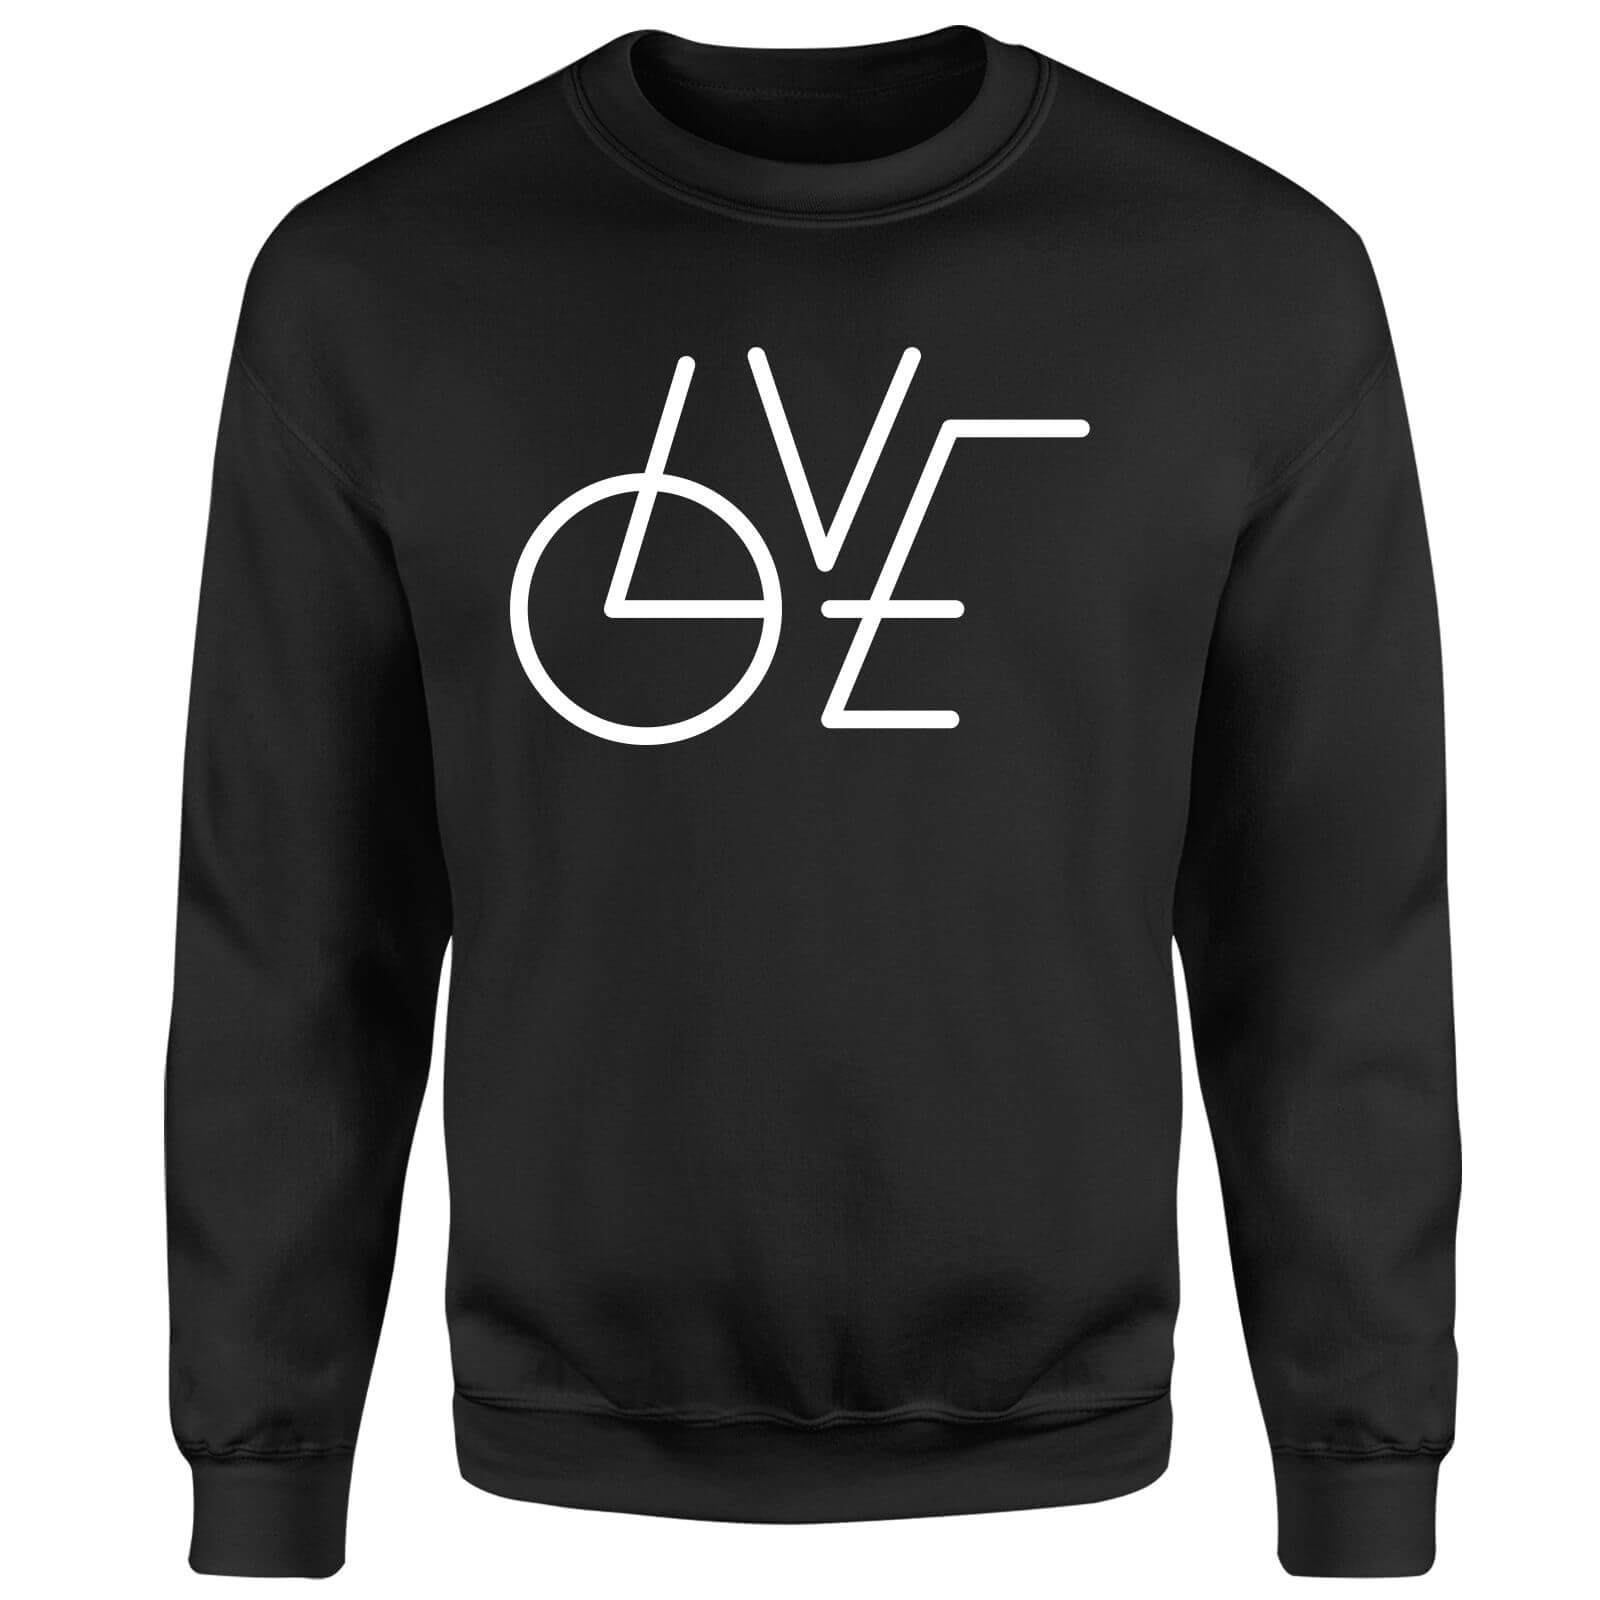 LOVE Modern Sweatshirt - Black